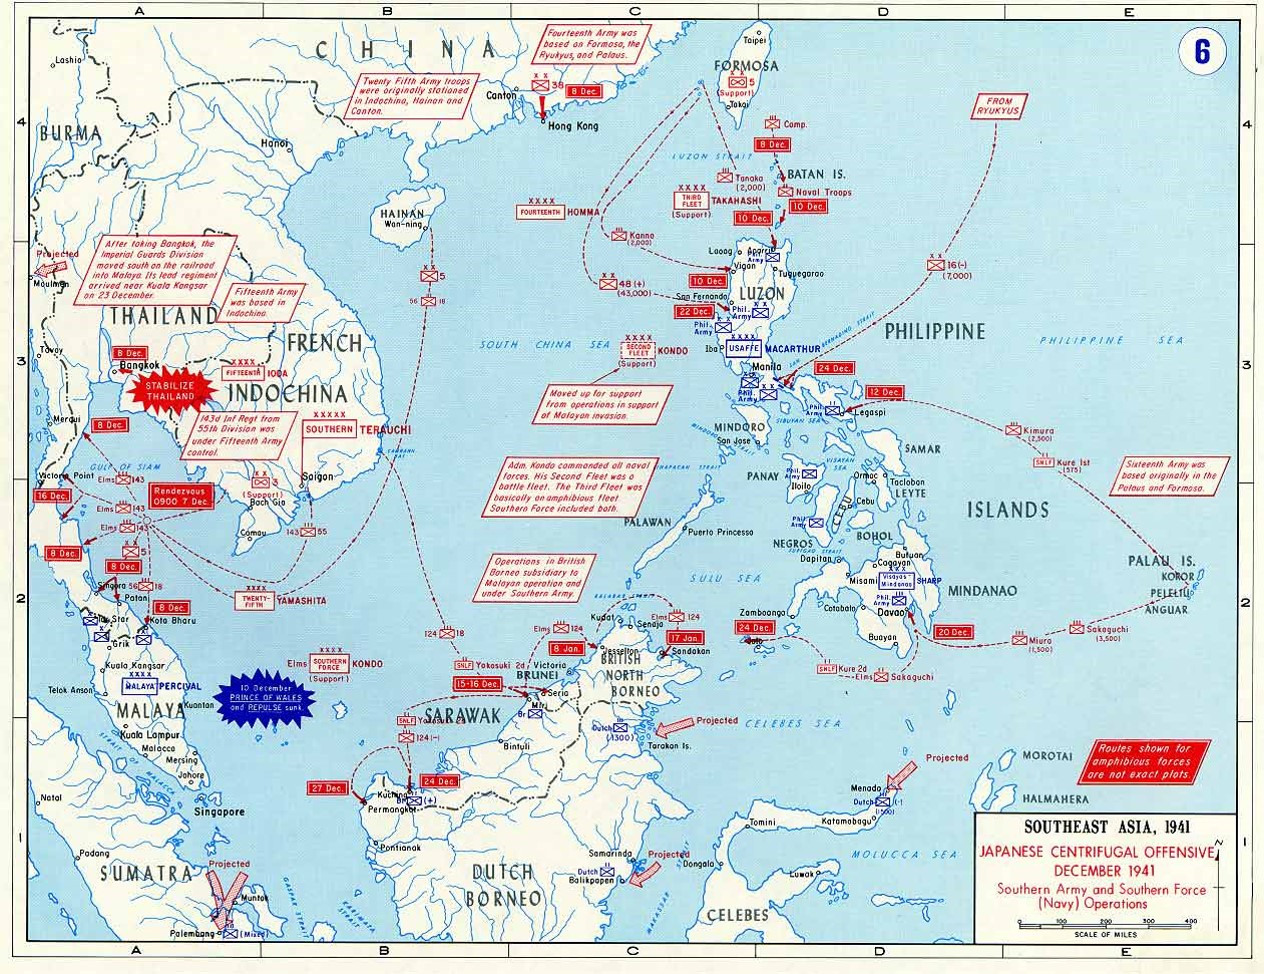 Map Of Asia After Ww2.Remembering Wwii In Maritime Asia Asia Maritime Transparency